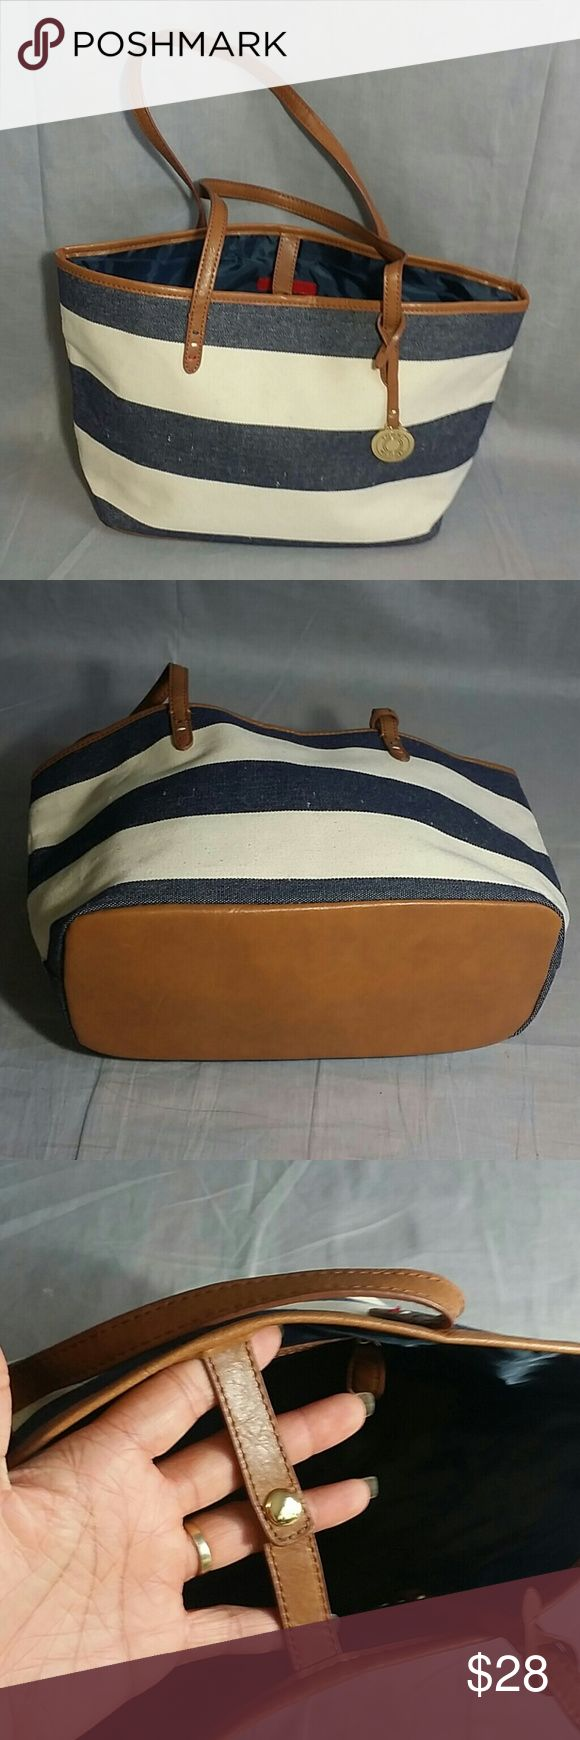 """Tommy Hilfiger totes Bag Multi-color Canvas Item is in a good condition, NO PETS AND SMOKE FREE HOME. Measurements strap Drop 8"""" height 9 """" Length 15.5"""" Tommy Hilfiger Bags Totes"""